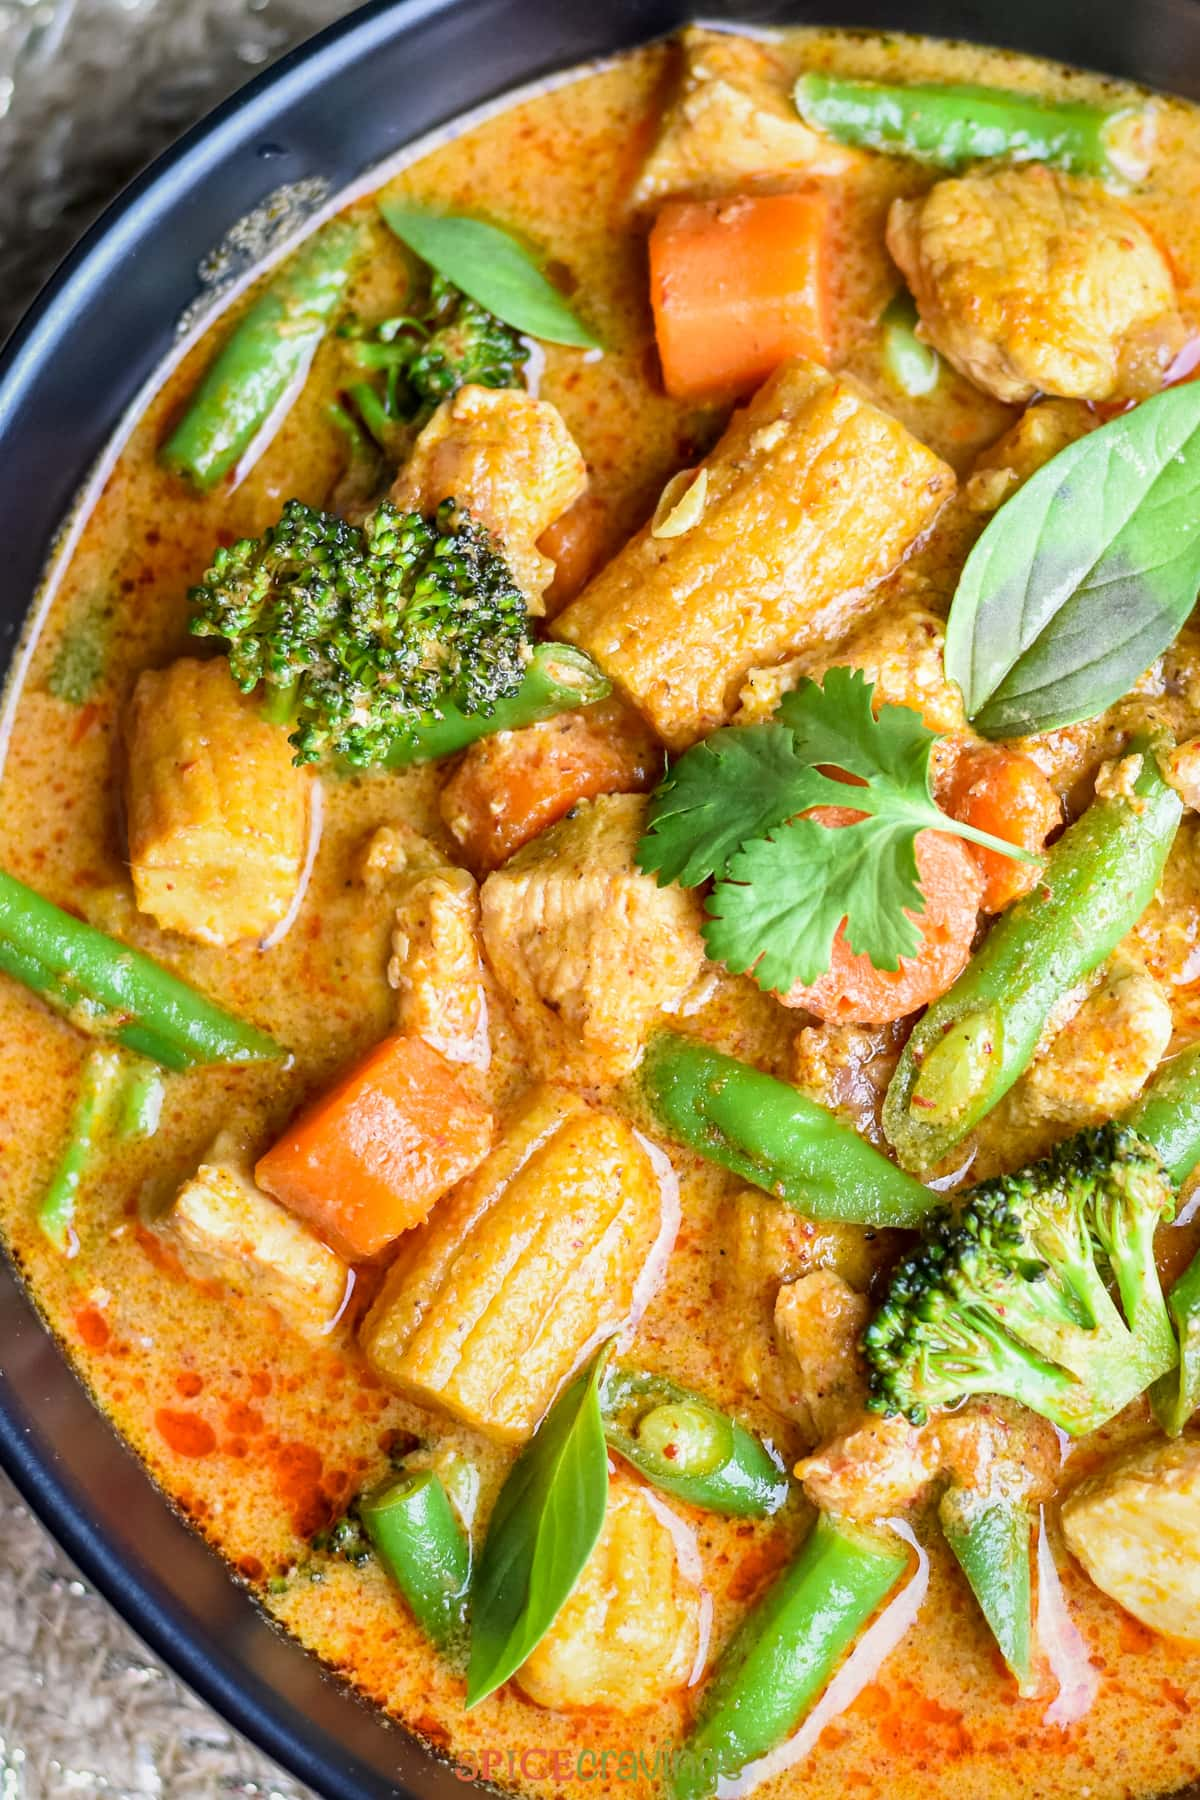 A bowl of thai Massaman Curry made with chicken and assorted vegetables including snow peas, carrots, broccoli and baby corn